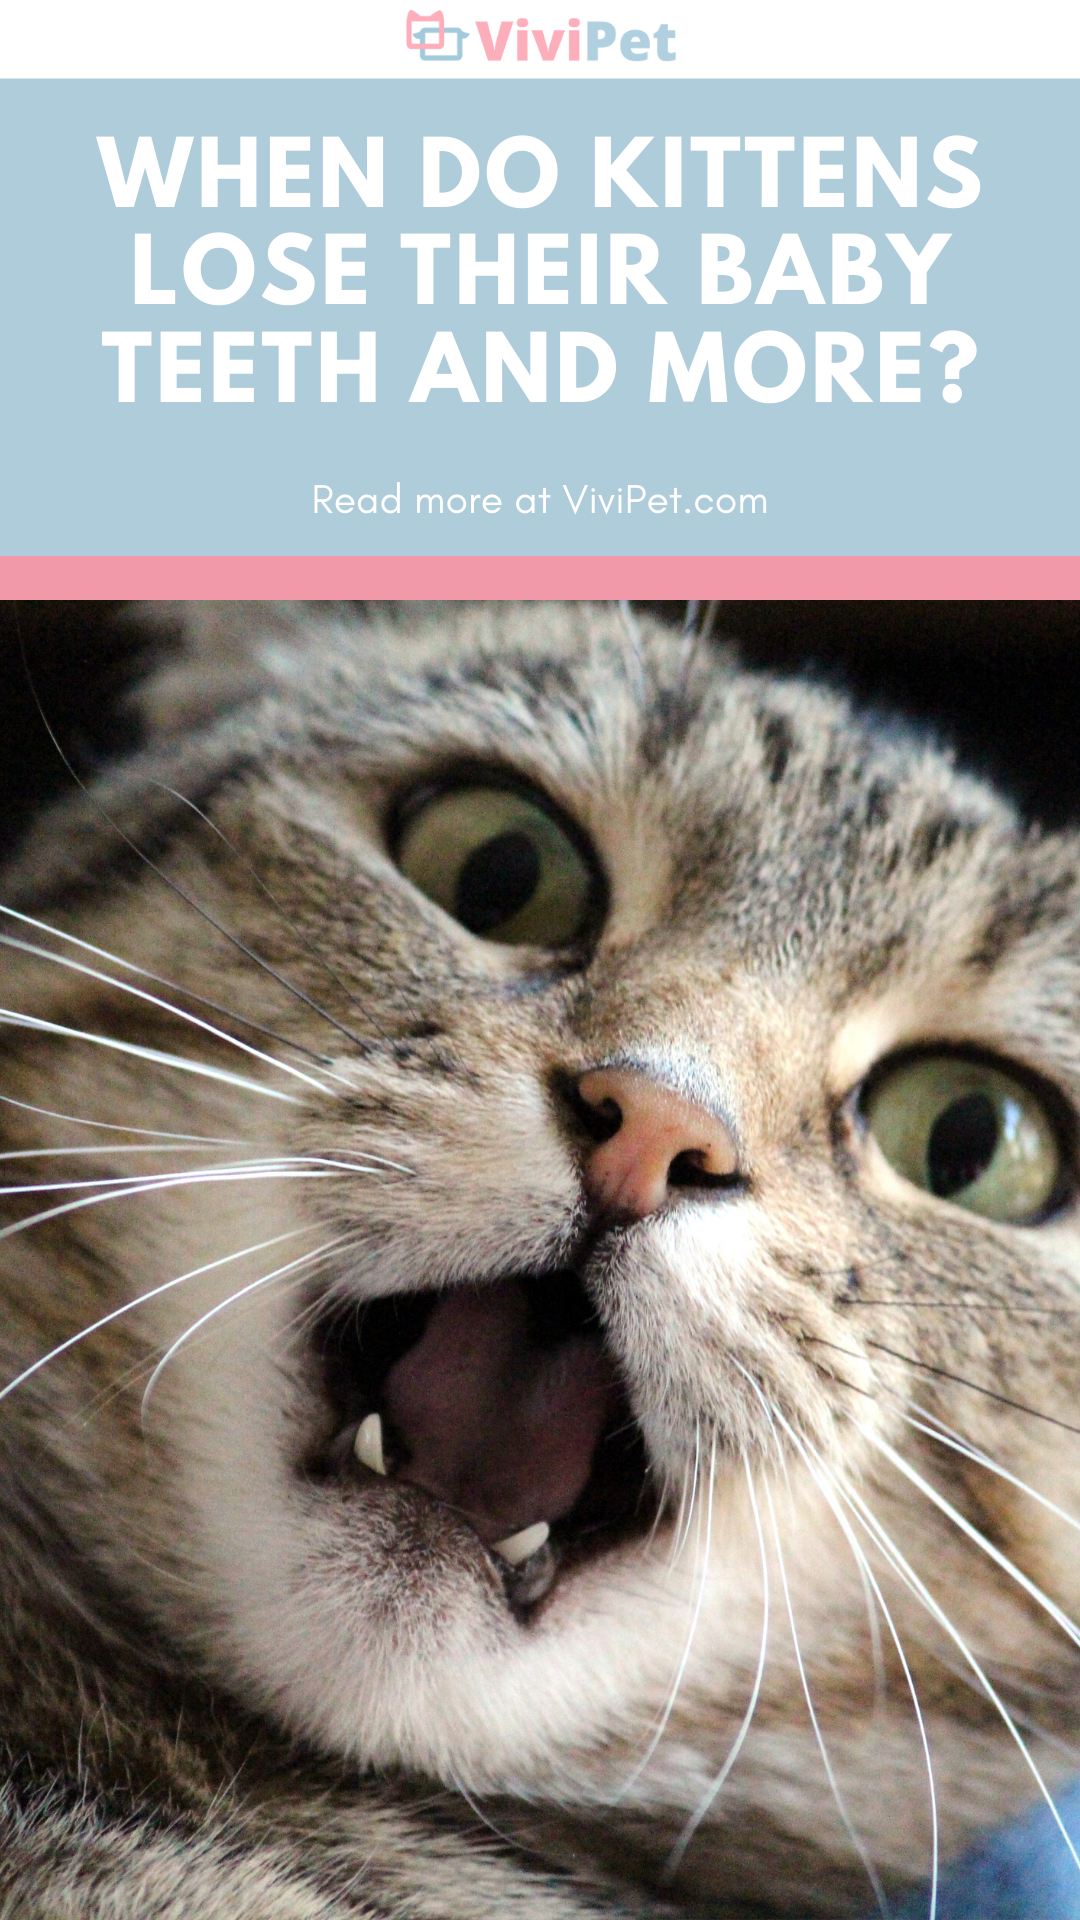 Vivipet When Do Kitten Lose Their Baby Teeth And More In 2020 Baby Teeth Cat Parenting Cat Themed Gifts